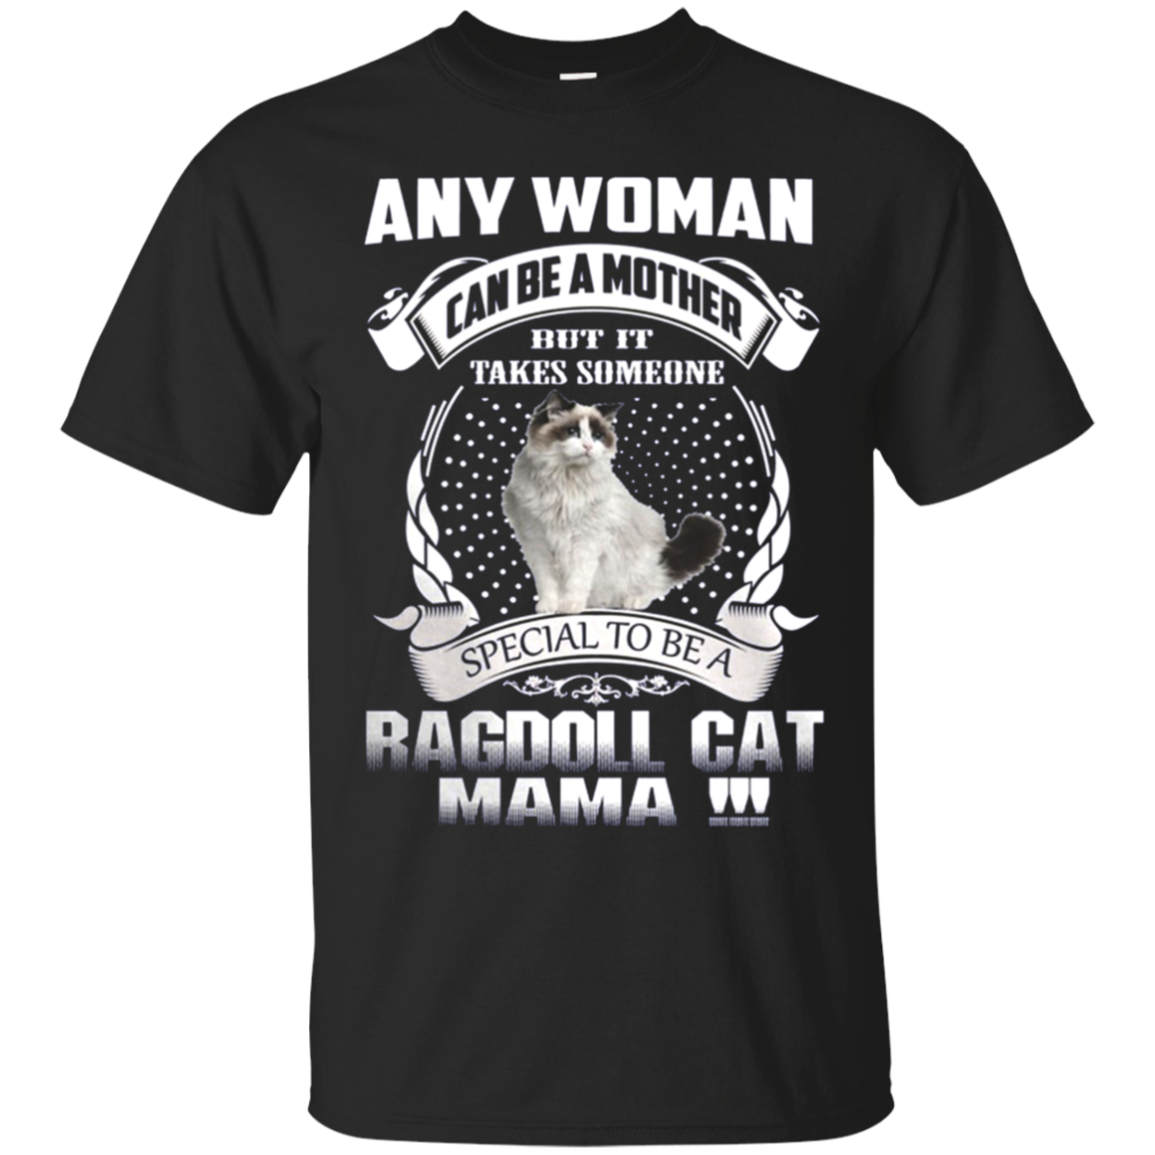 Cat Ragdoll Mom Shirts It Takes Someone Special Be Ragdoll Mama T-Shirts Hoodies Sweatshirts